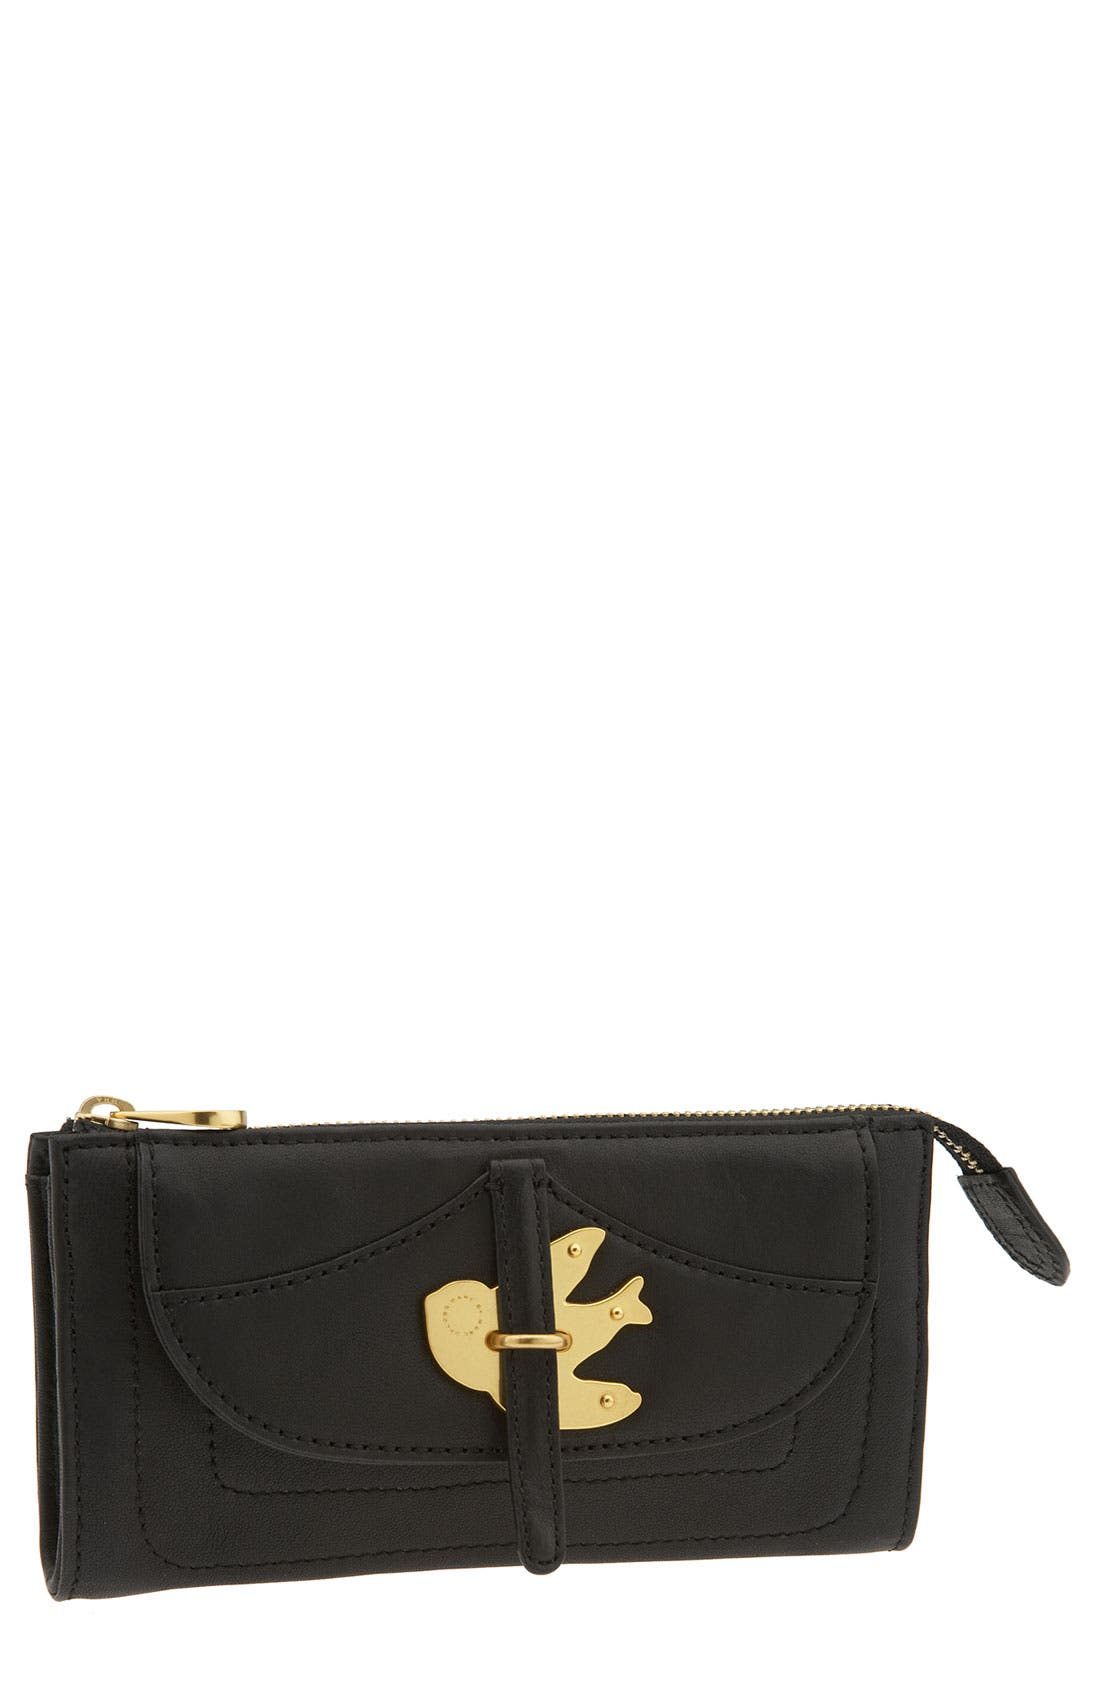 MARC BY MARC JACOBS 'Petal to the Metal' Zip Clutch Wallet,                             Main thumbnail 1, color,                             001